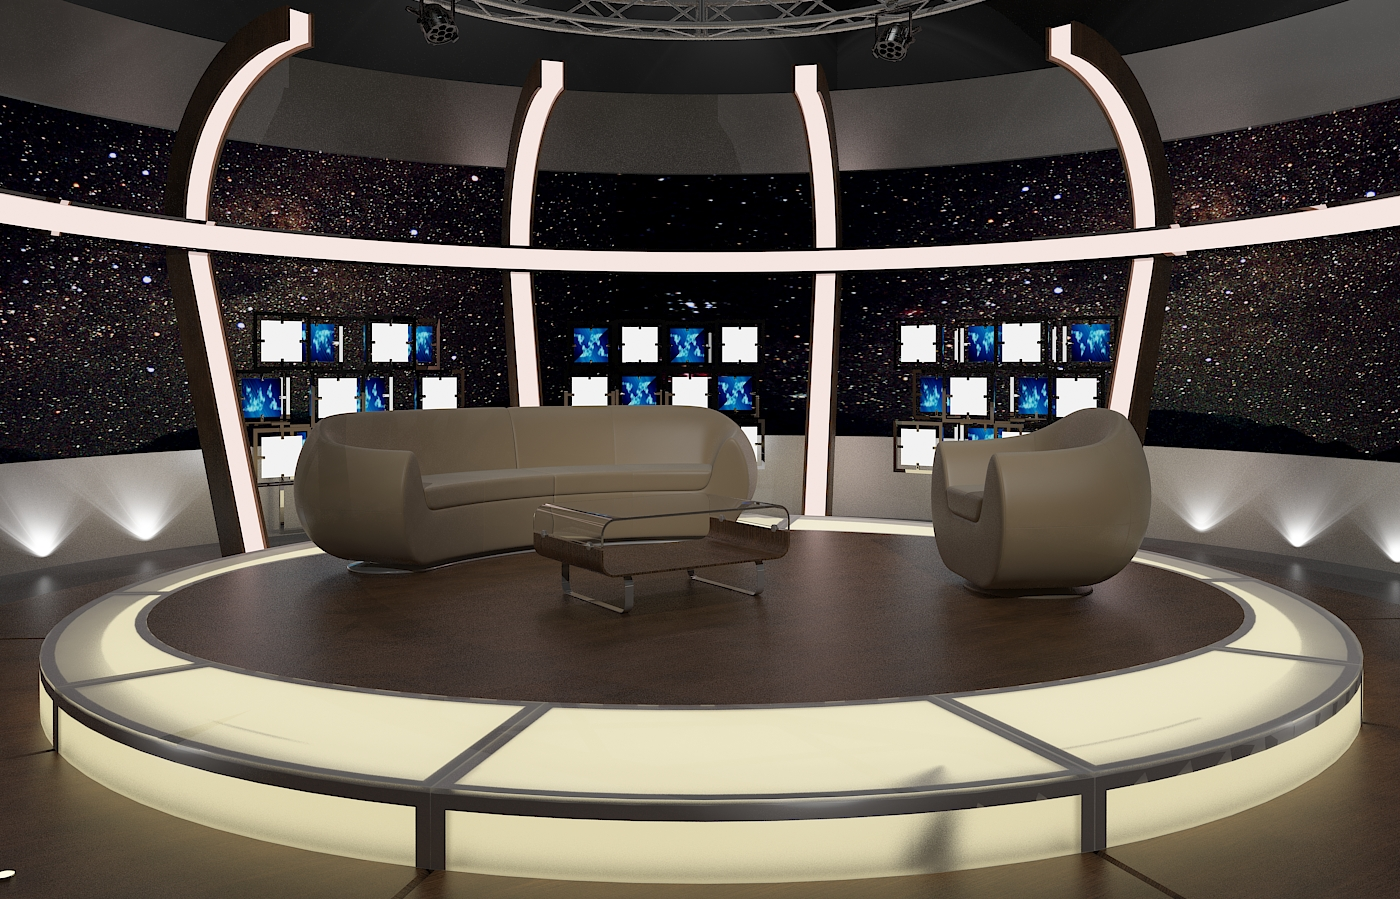 tv studio furniture. Virtual TV Chat Set 20 3d Model Max Dxf Fbx Obj Tv Studio Furniture I